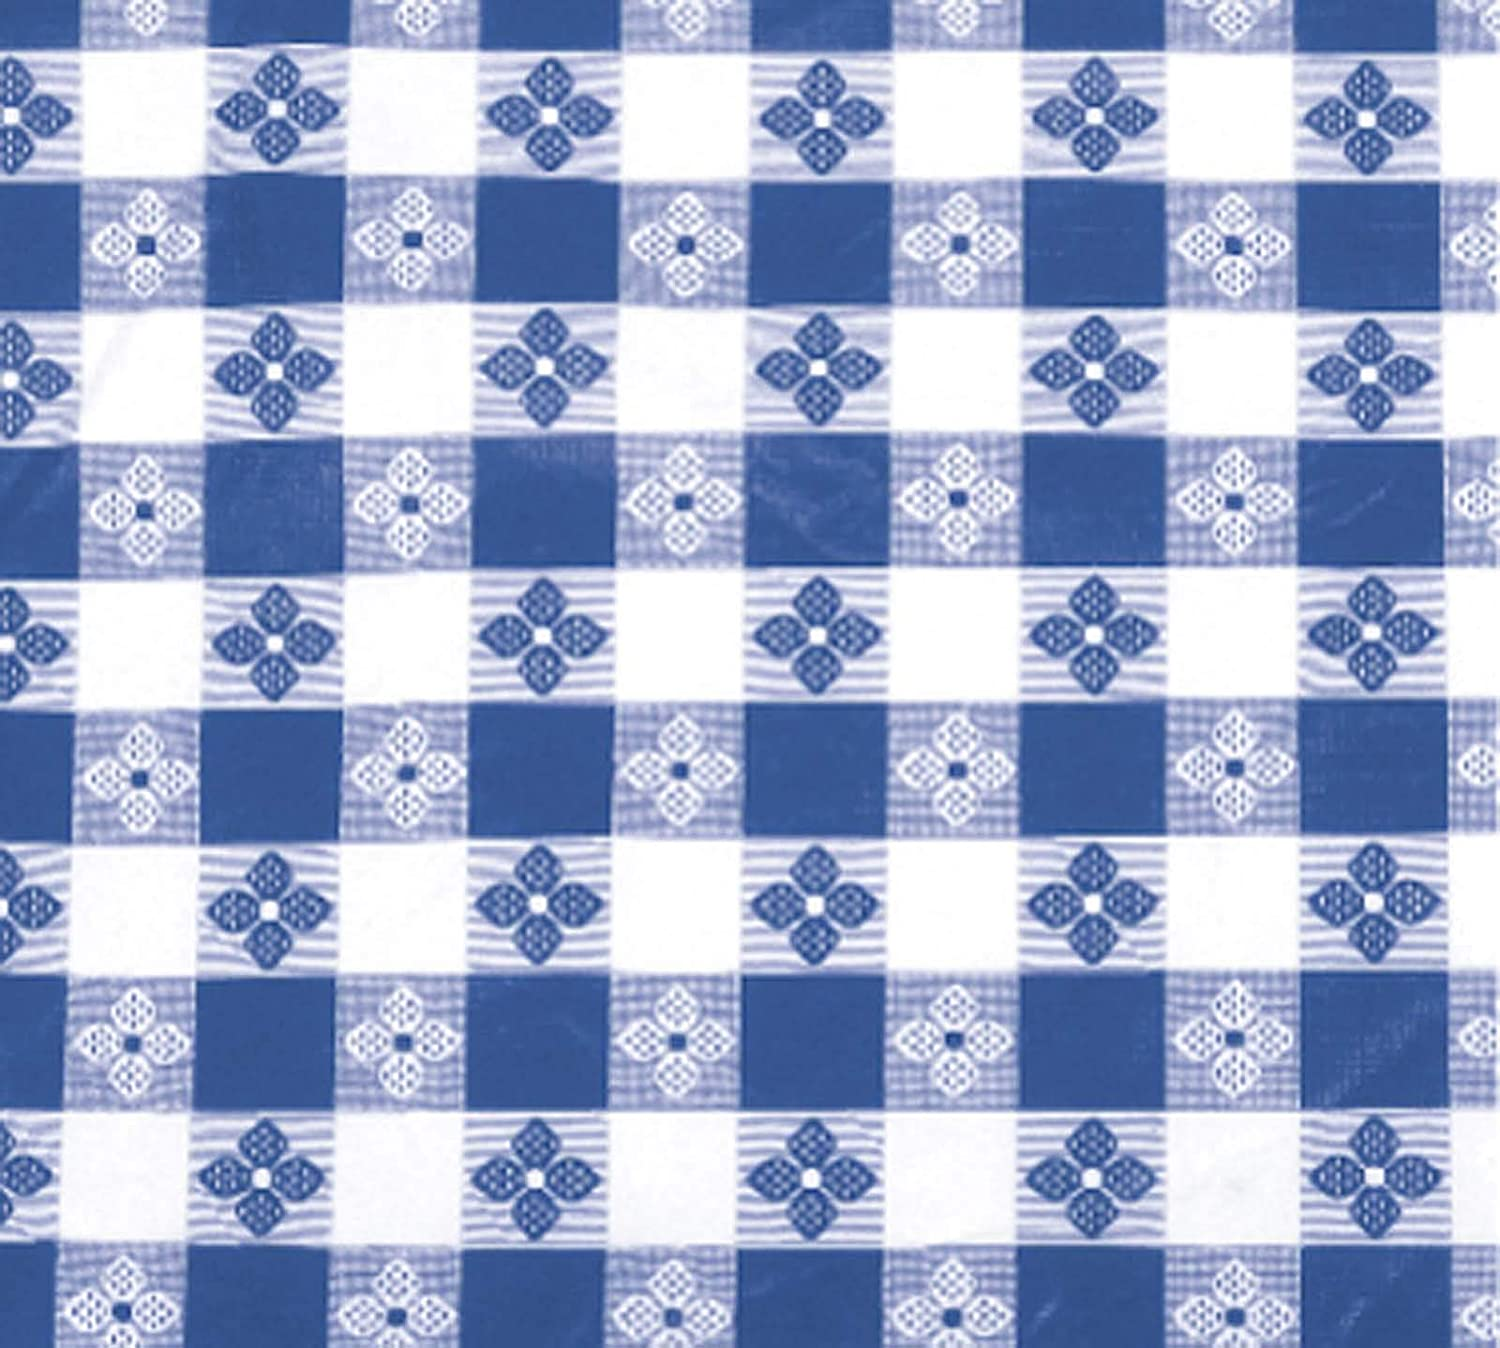 Winco TBCO-70B Checkered Table Cloth, 52-Inch x 70-Inch, Blue